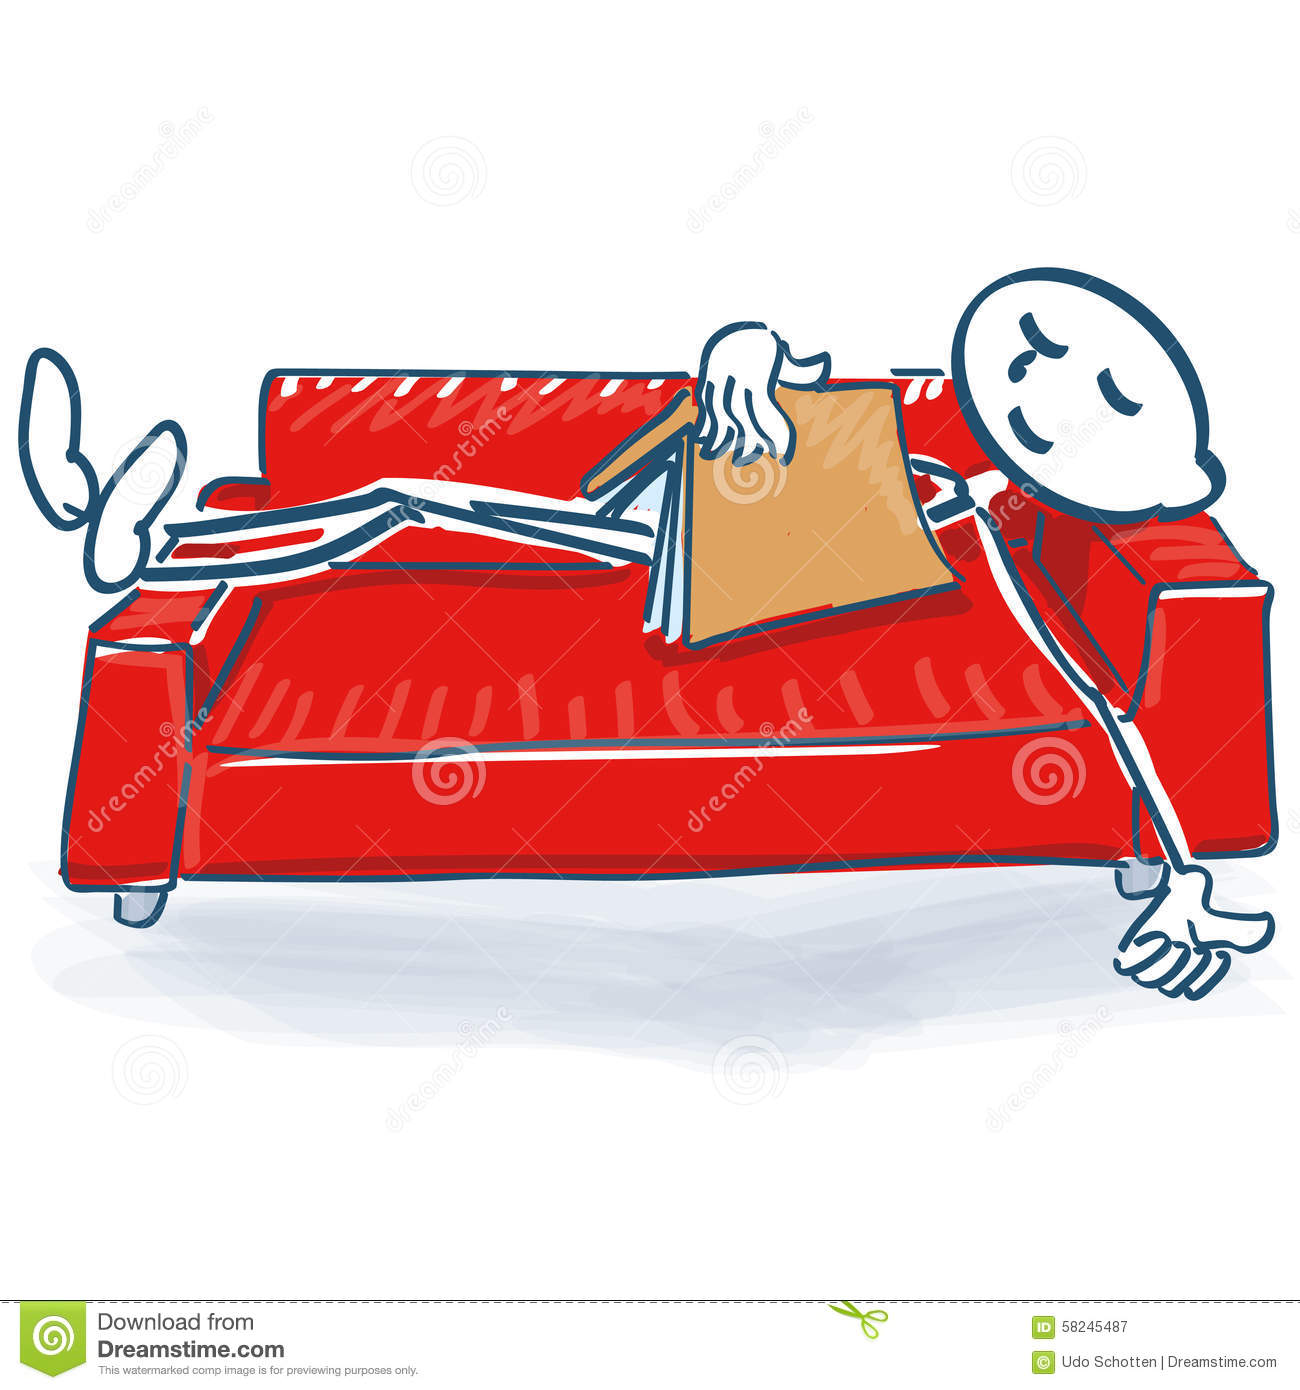 Stick figure with a book sleeping on a sofa bed stock for Schlafcouch sofa